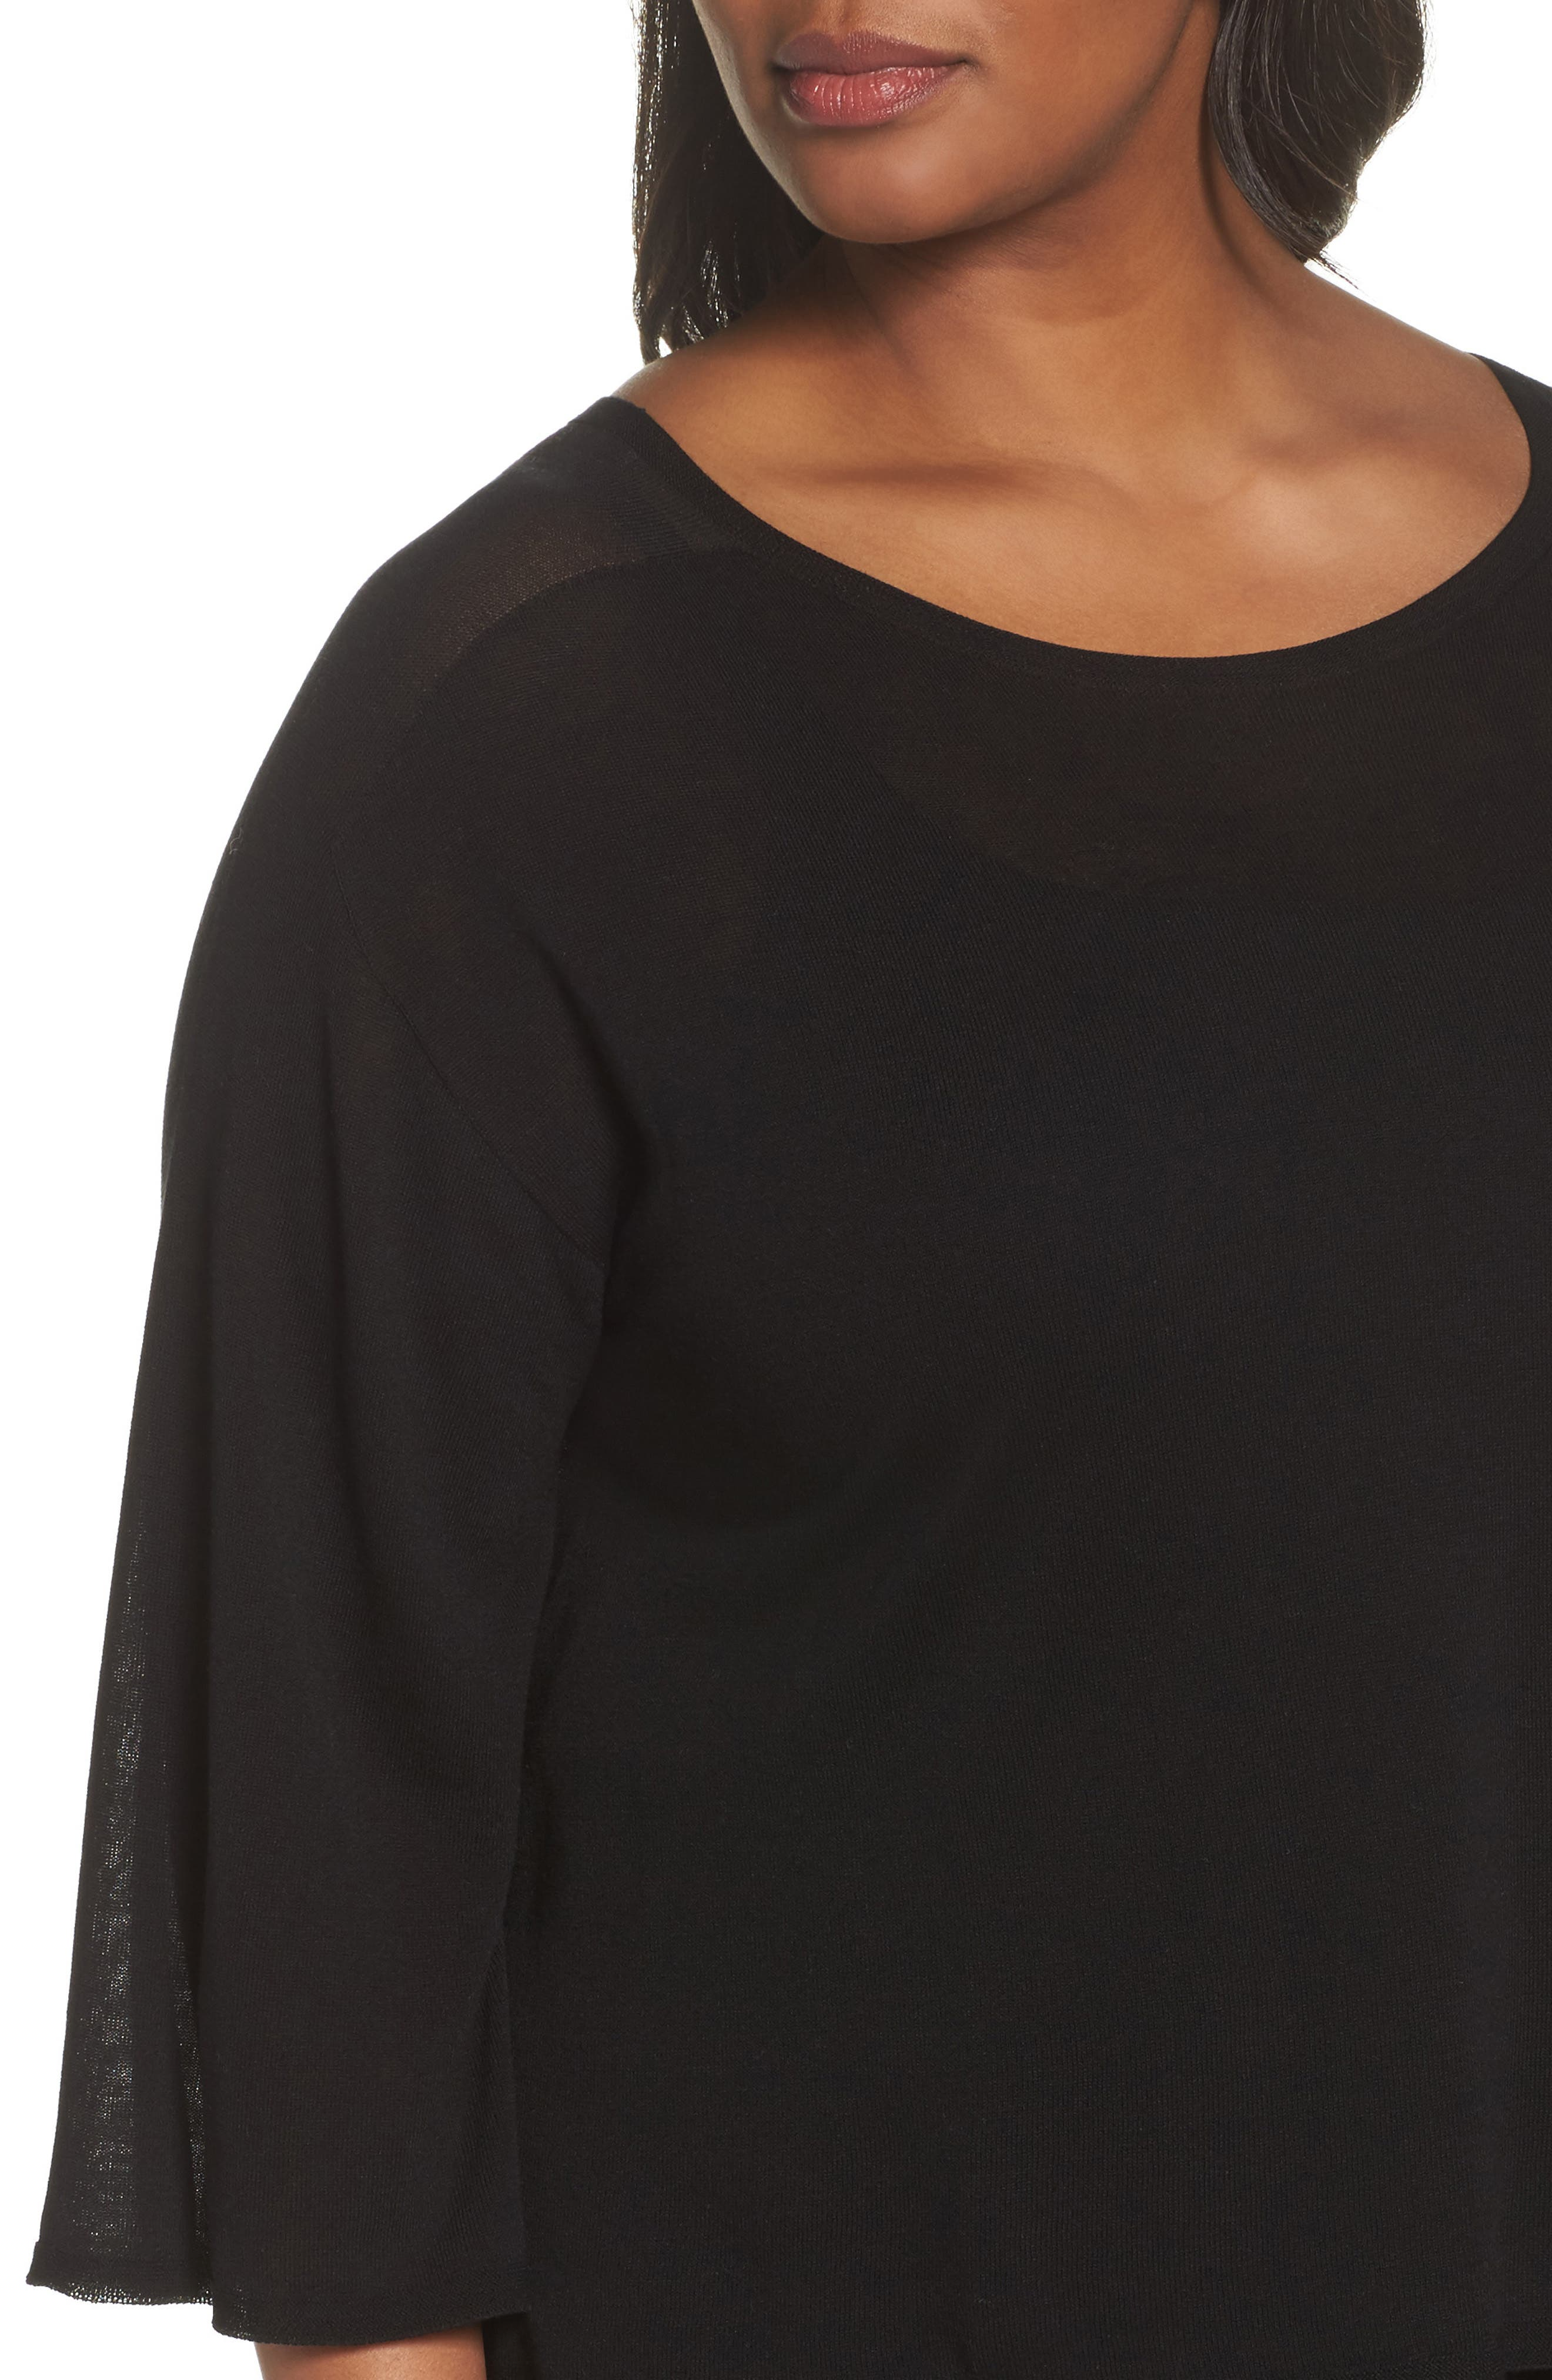 Tencel<sup>®</sup> Lyocell Lyocell Knit Sweater,                             Alternate thumbnail 4, color,                             Black